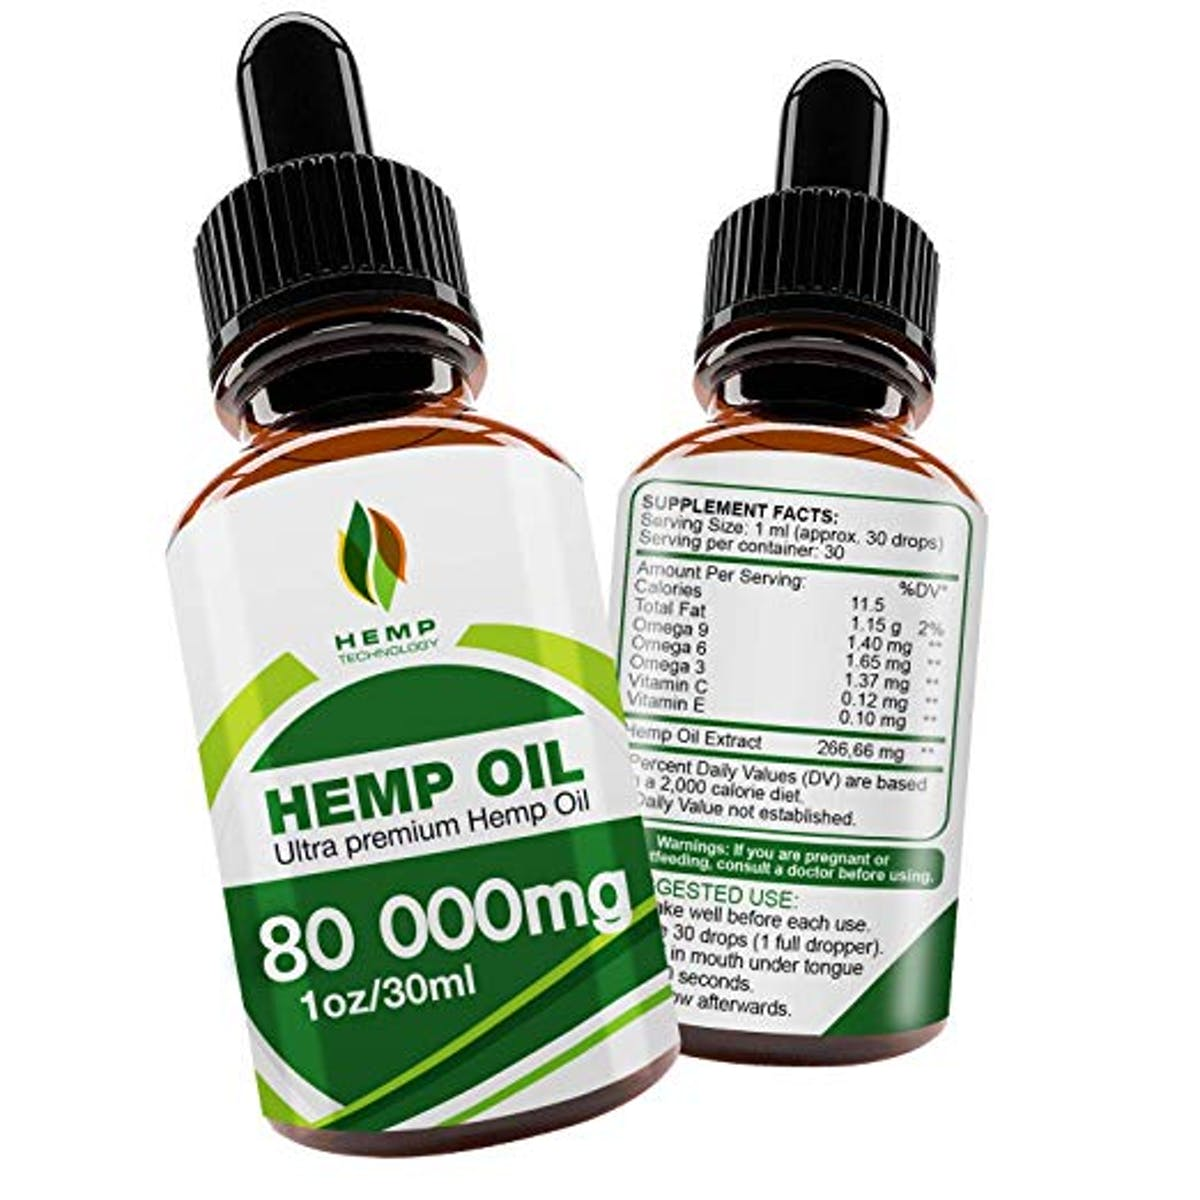 Hemp Oils to Deal With Anxiety